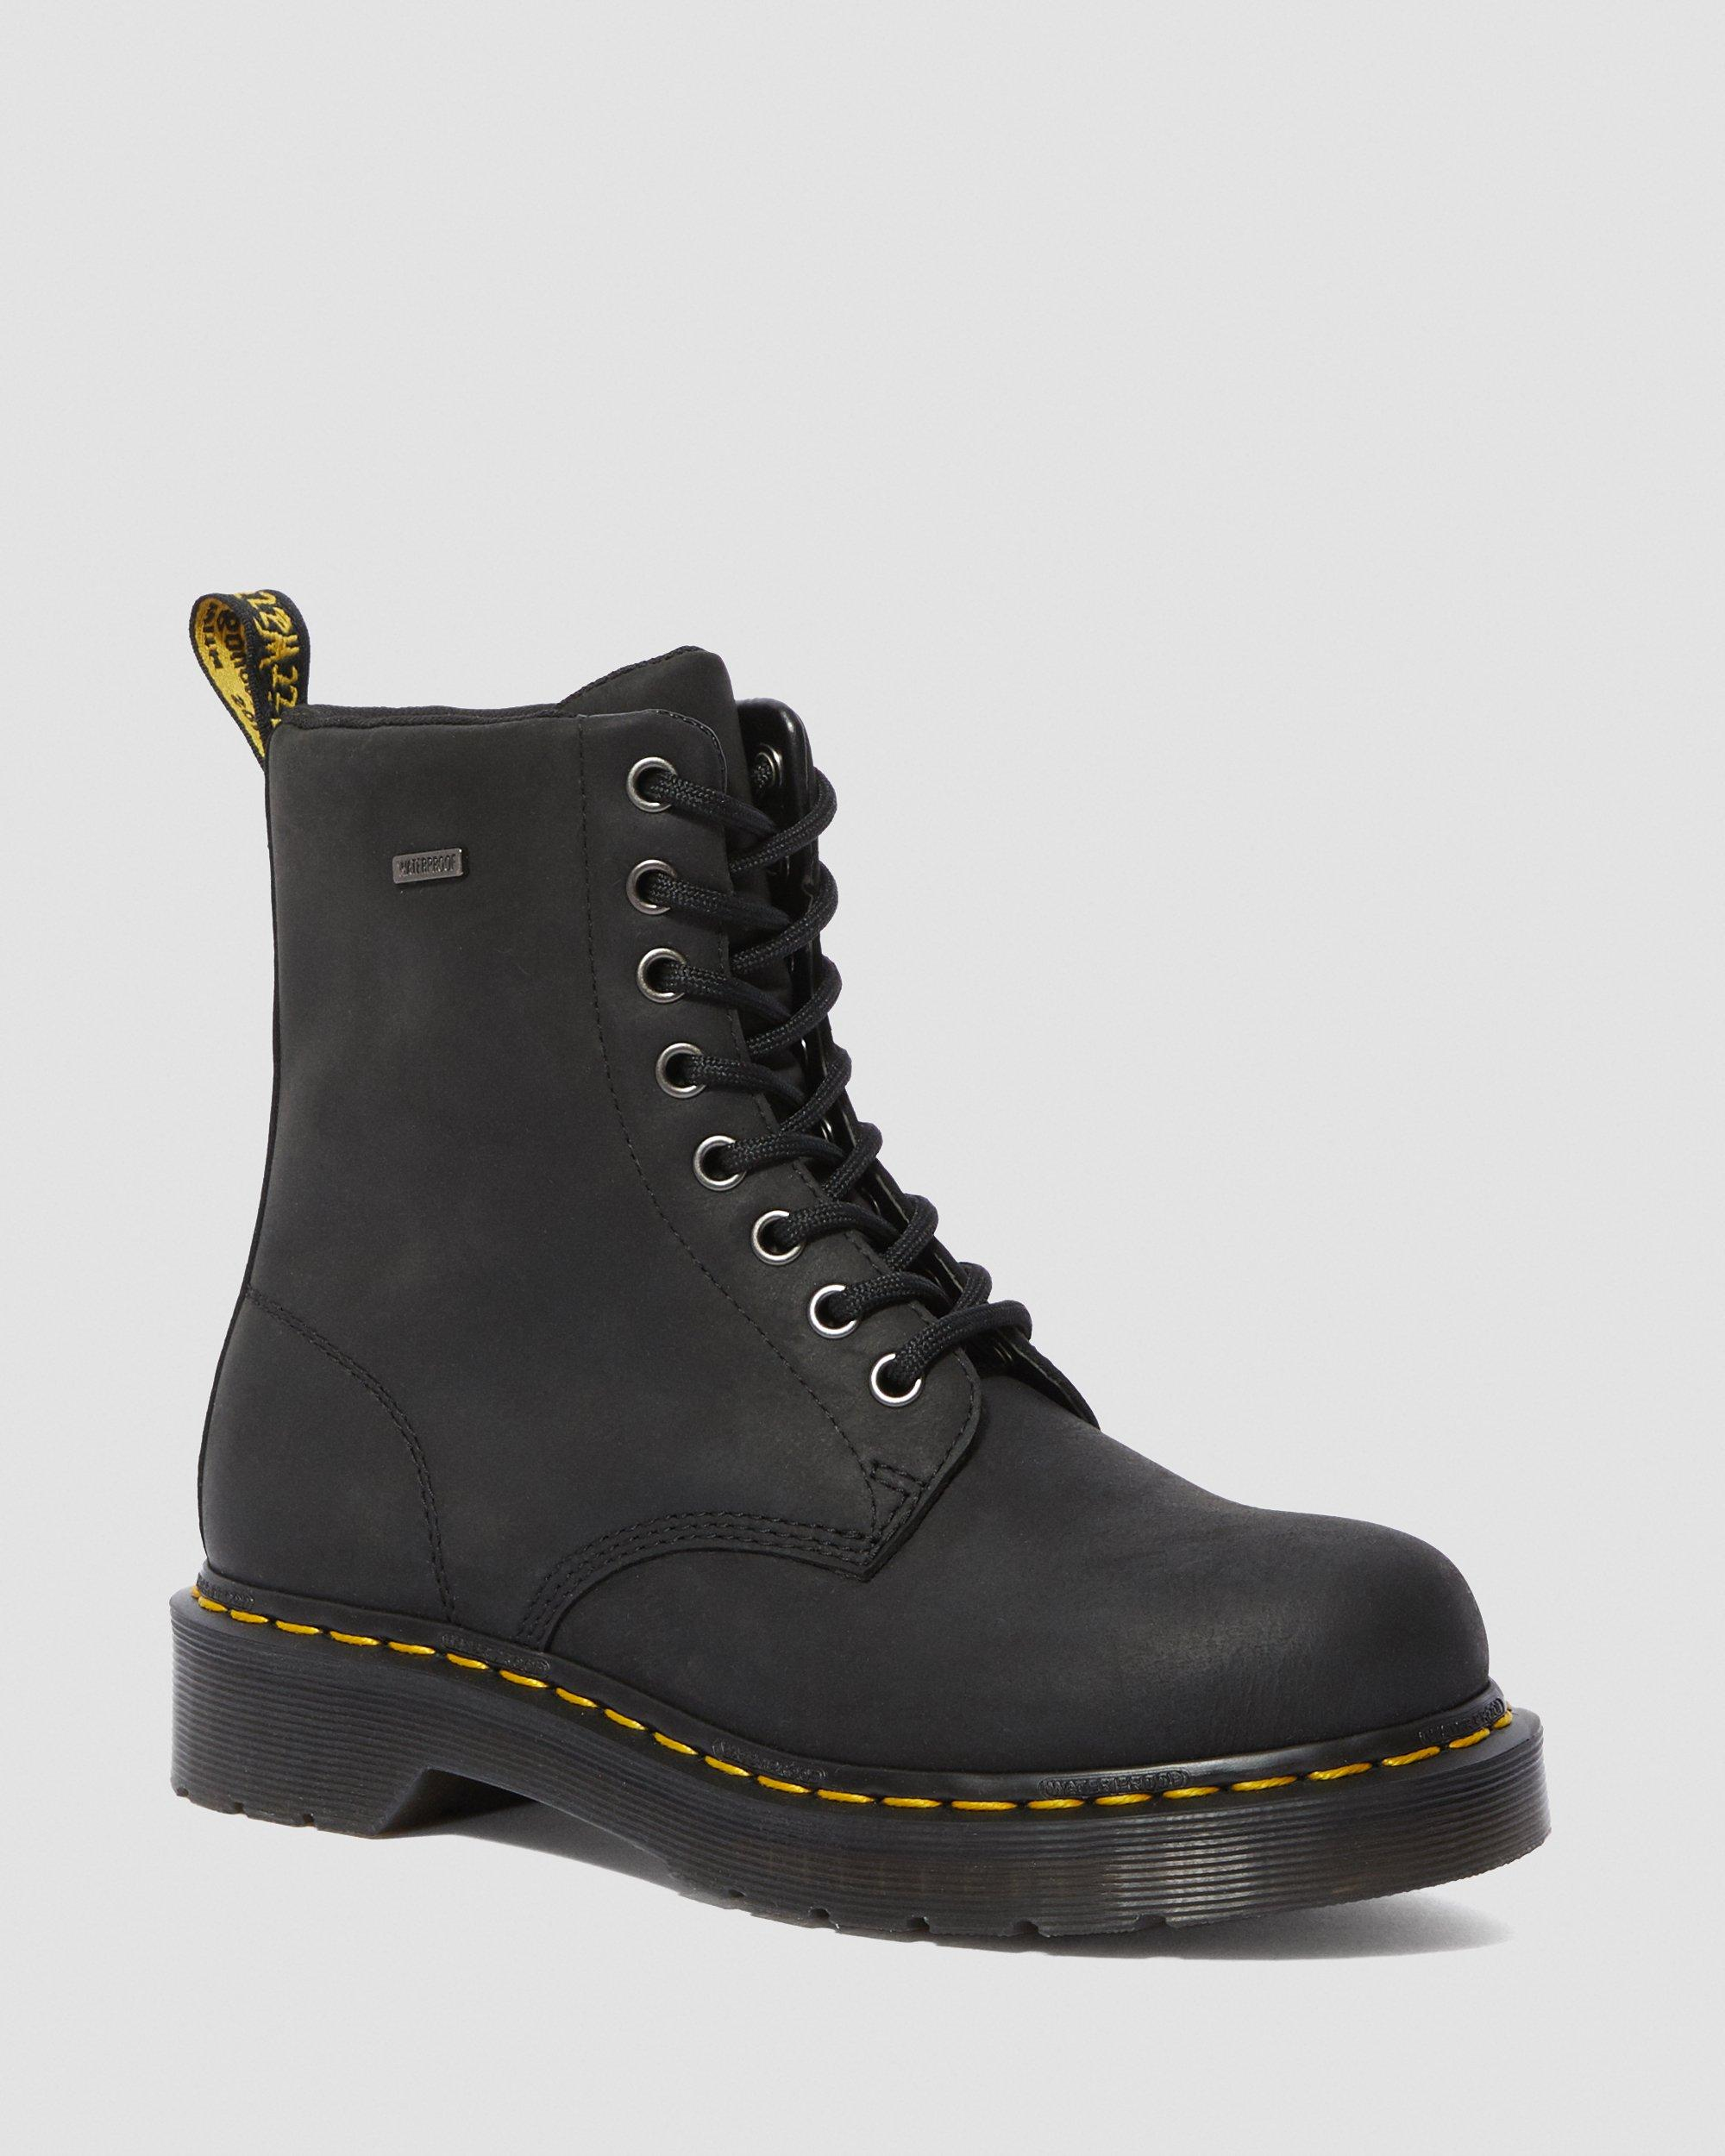 WATERPROOF LACE UP BOOTS | Dr. Martens